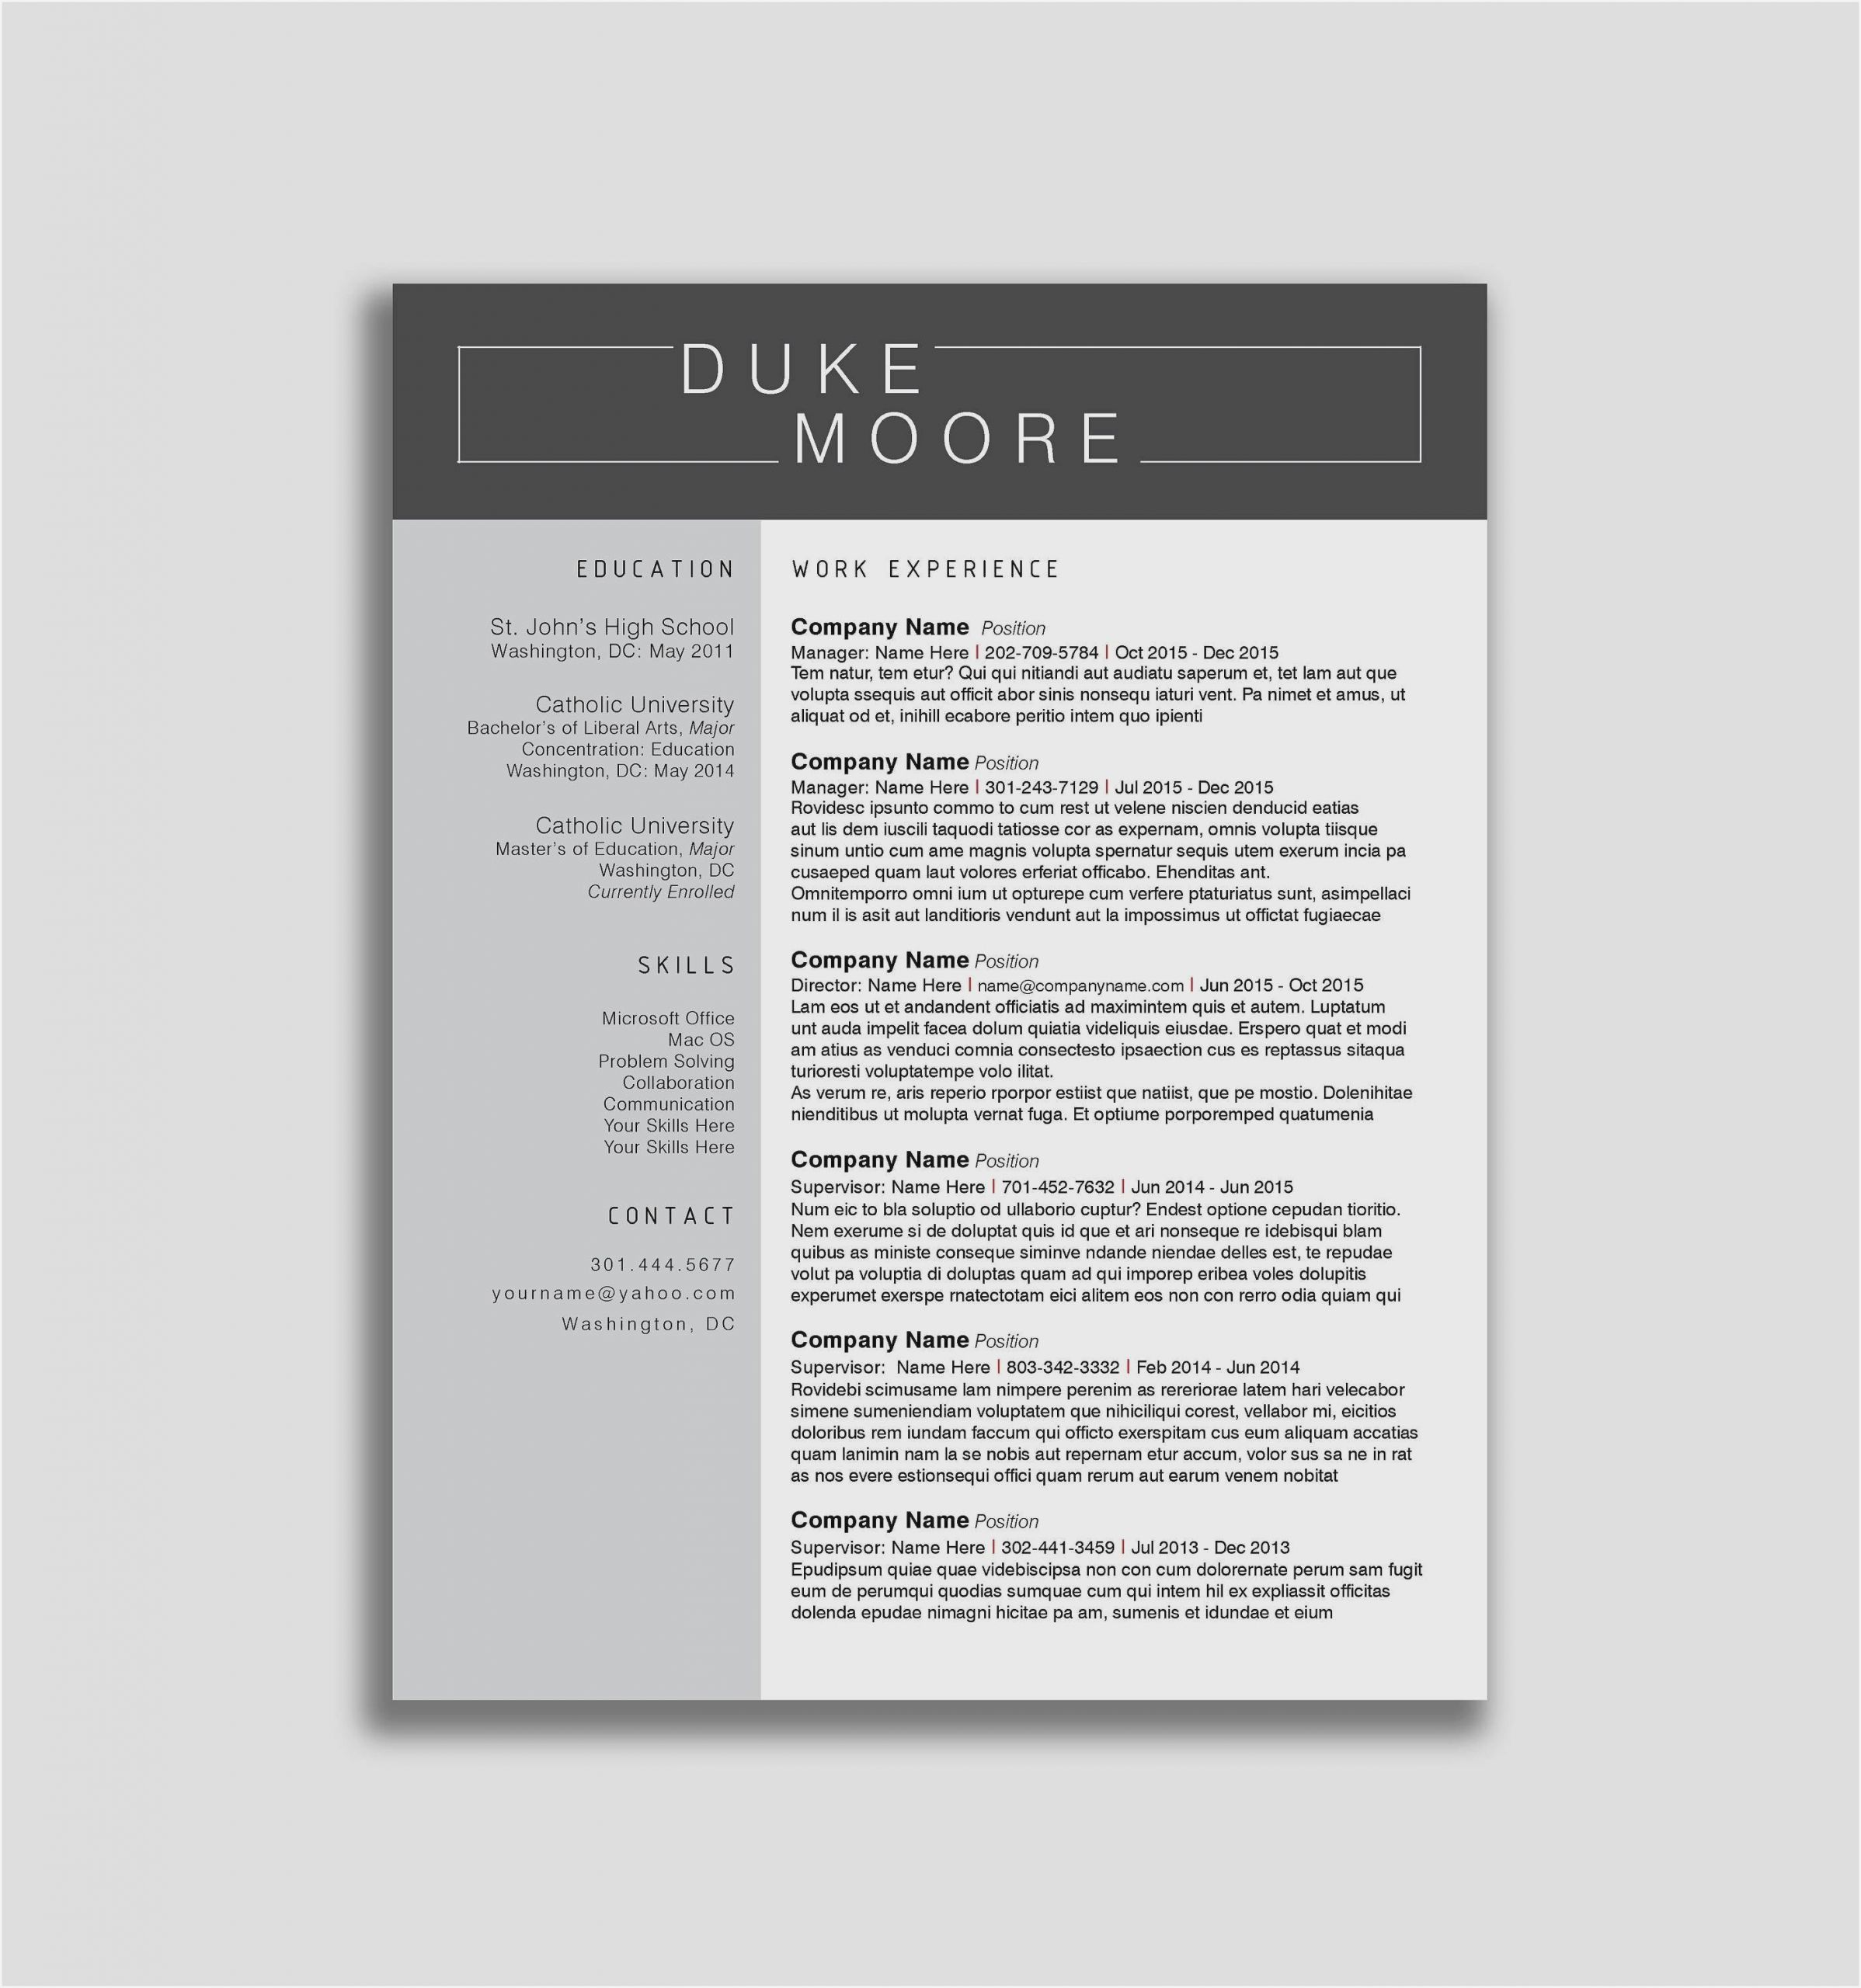 modern resume template free sample cool templates scaled hybrid examples movie catering Resume Cool Resume Templates Free Download